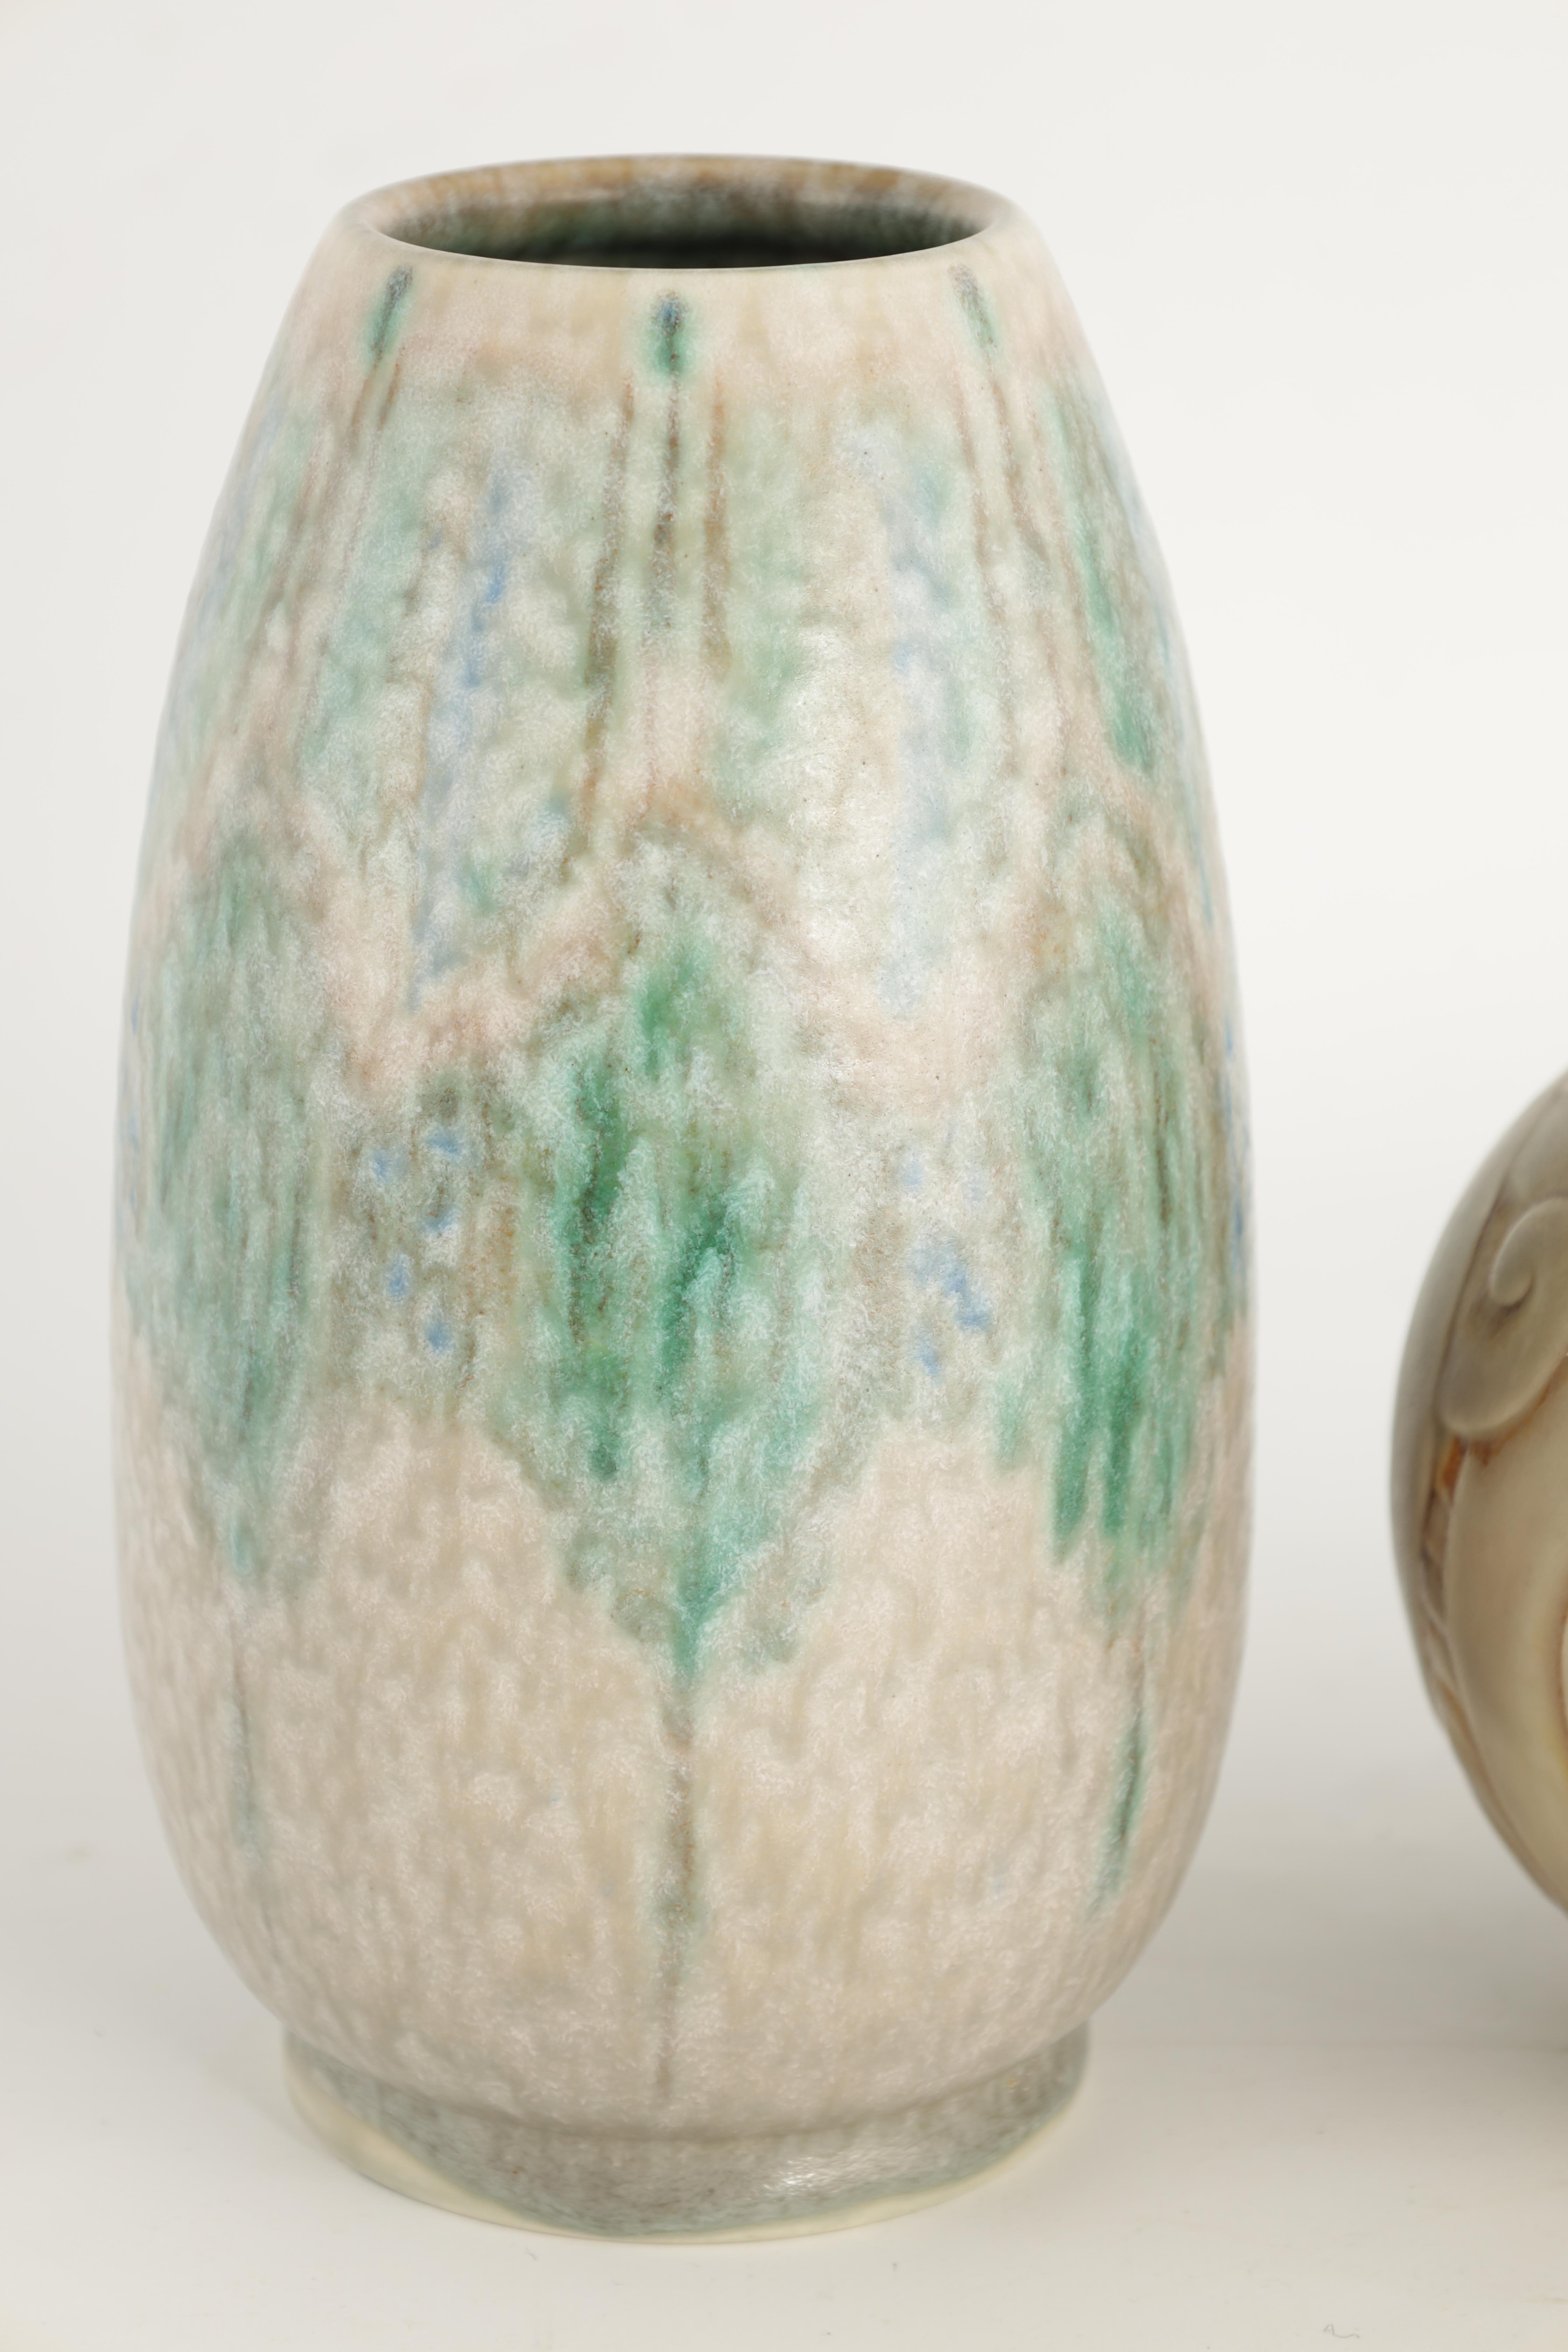 A ROYAL LANCASTRIAN TAPERED OVOID VASE with mottled blue and green leaf spray decoration on a - Image 3 of 8